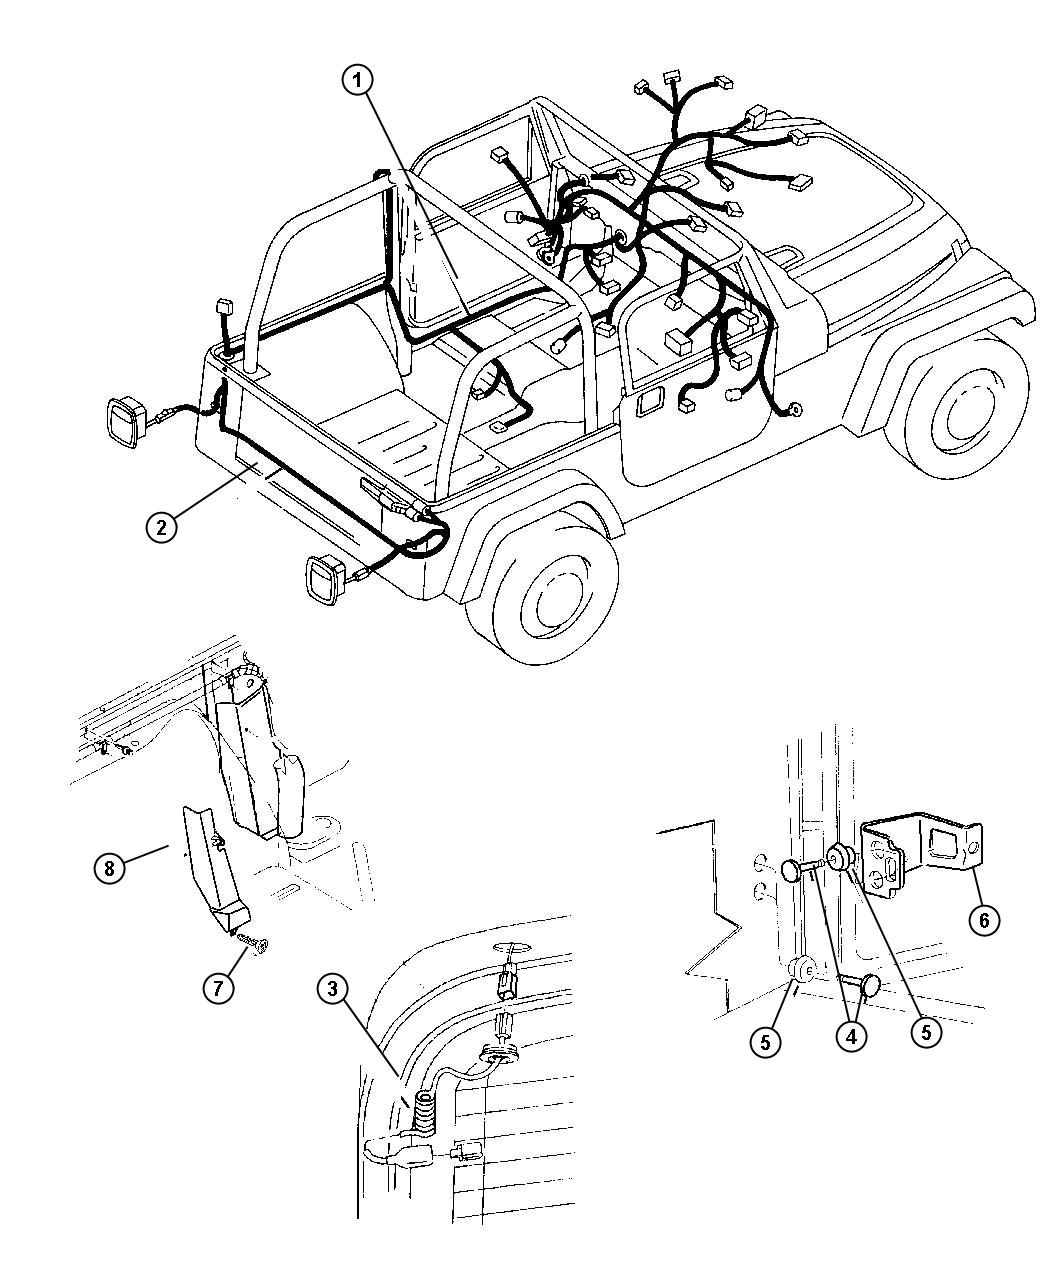 Wrangler Wiring Diagram For